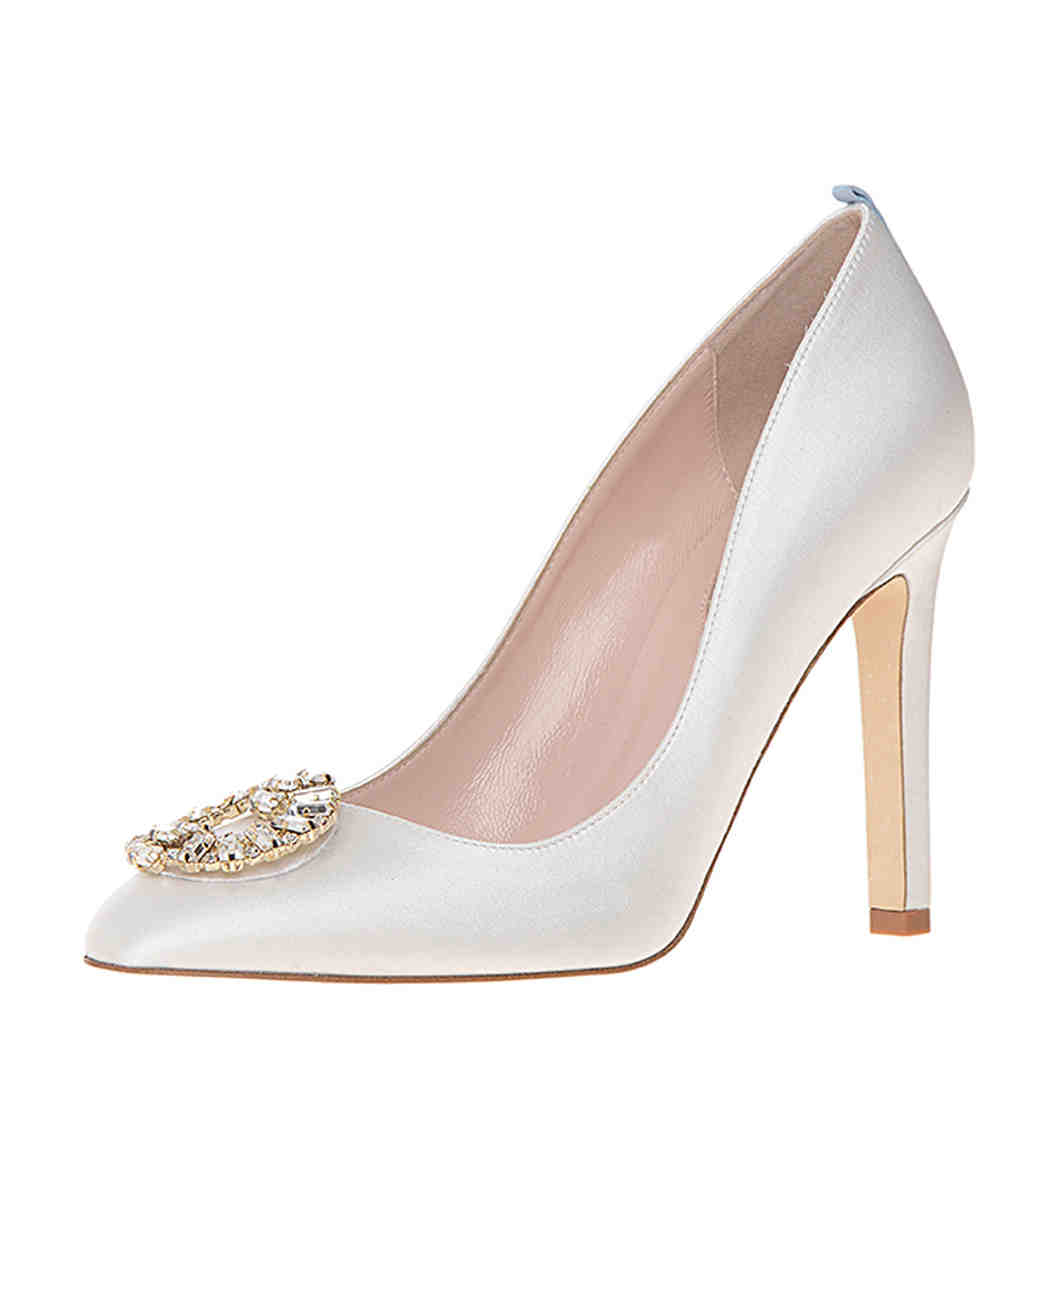 sjp-bridal-shoes-angelica-white-0515.jpg